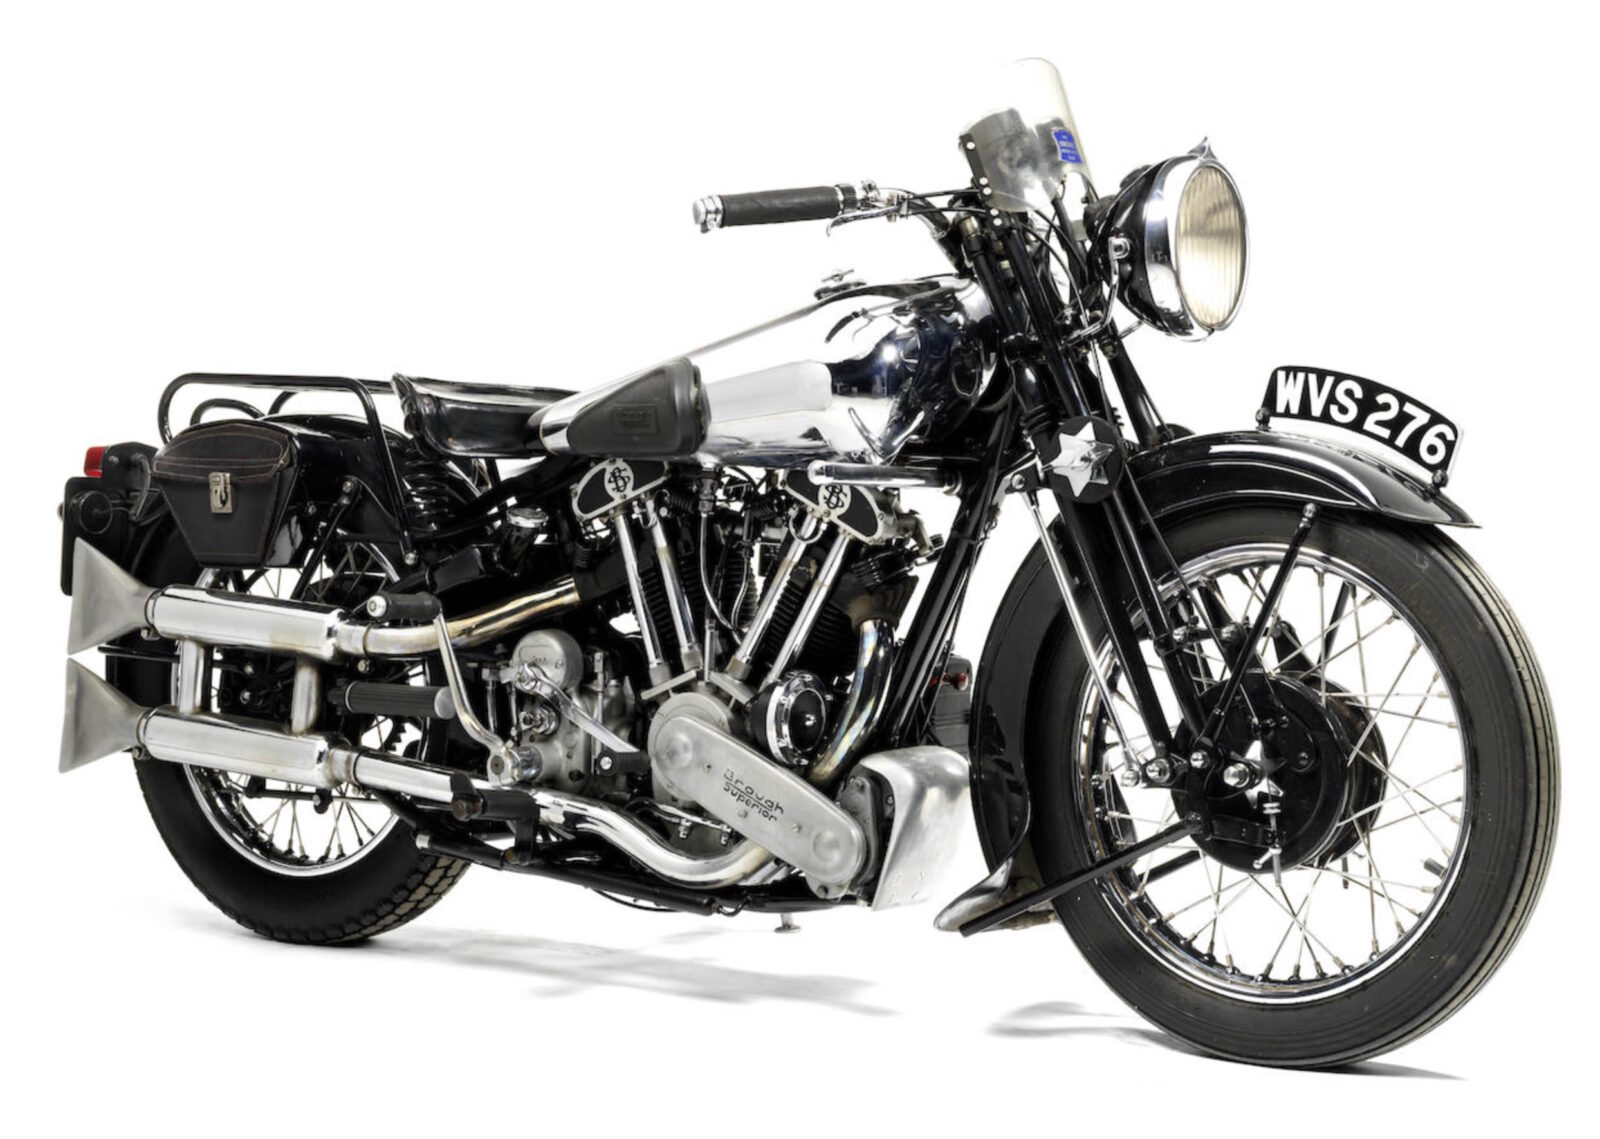 Brough Superior SS100 motorcycle